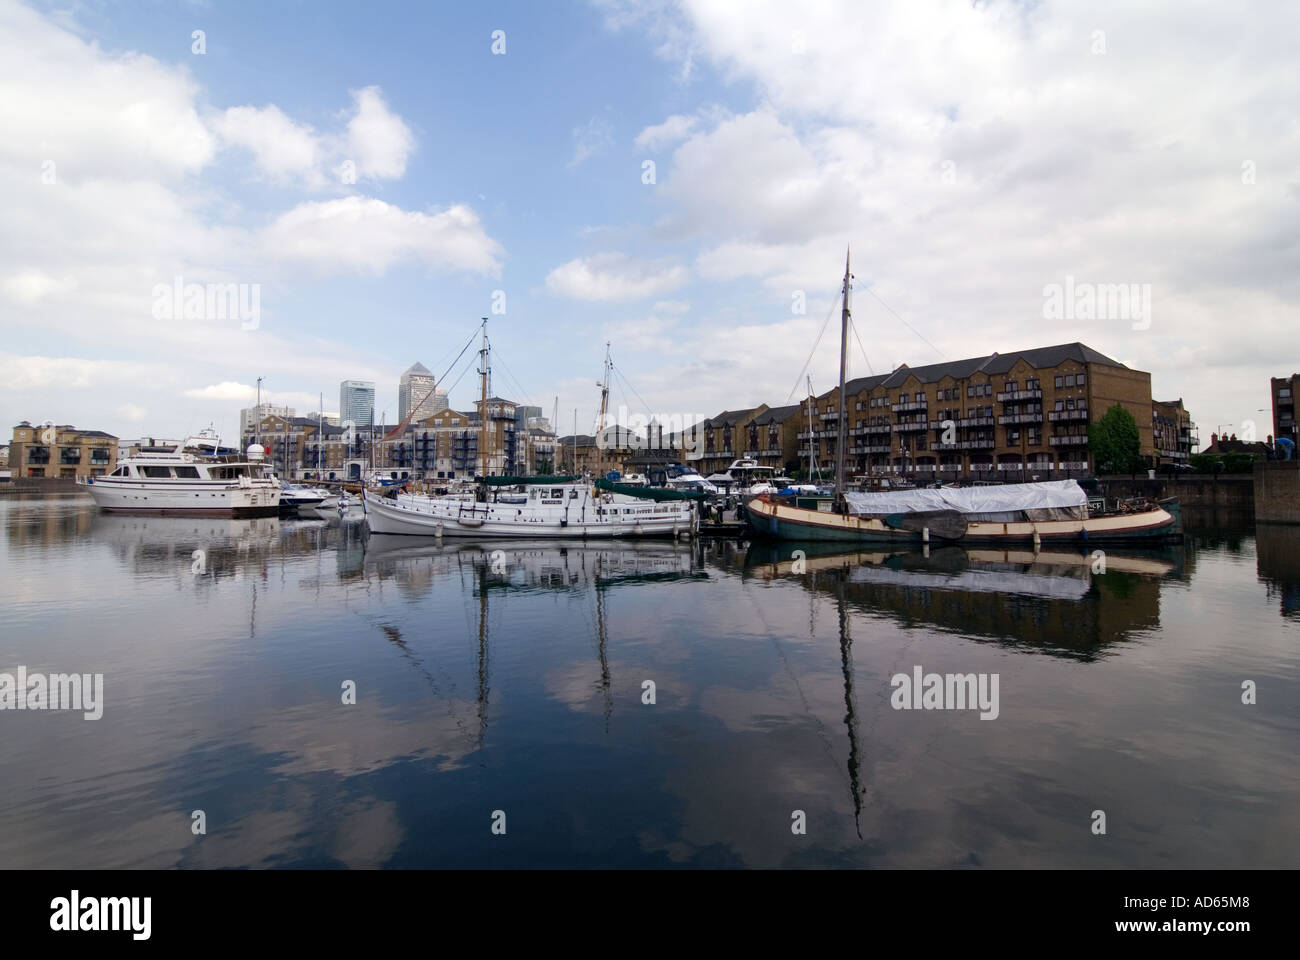 PICTURE CREDIT Doug Blane Limehouse canal basin in London Stock Photo